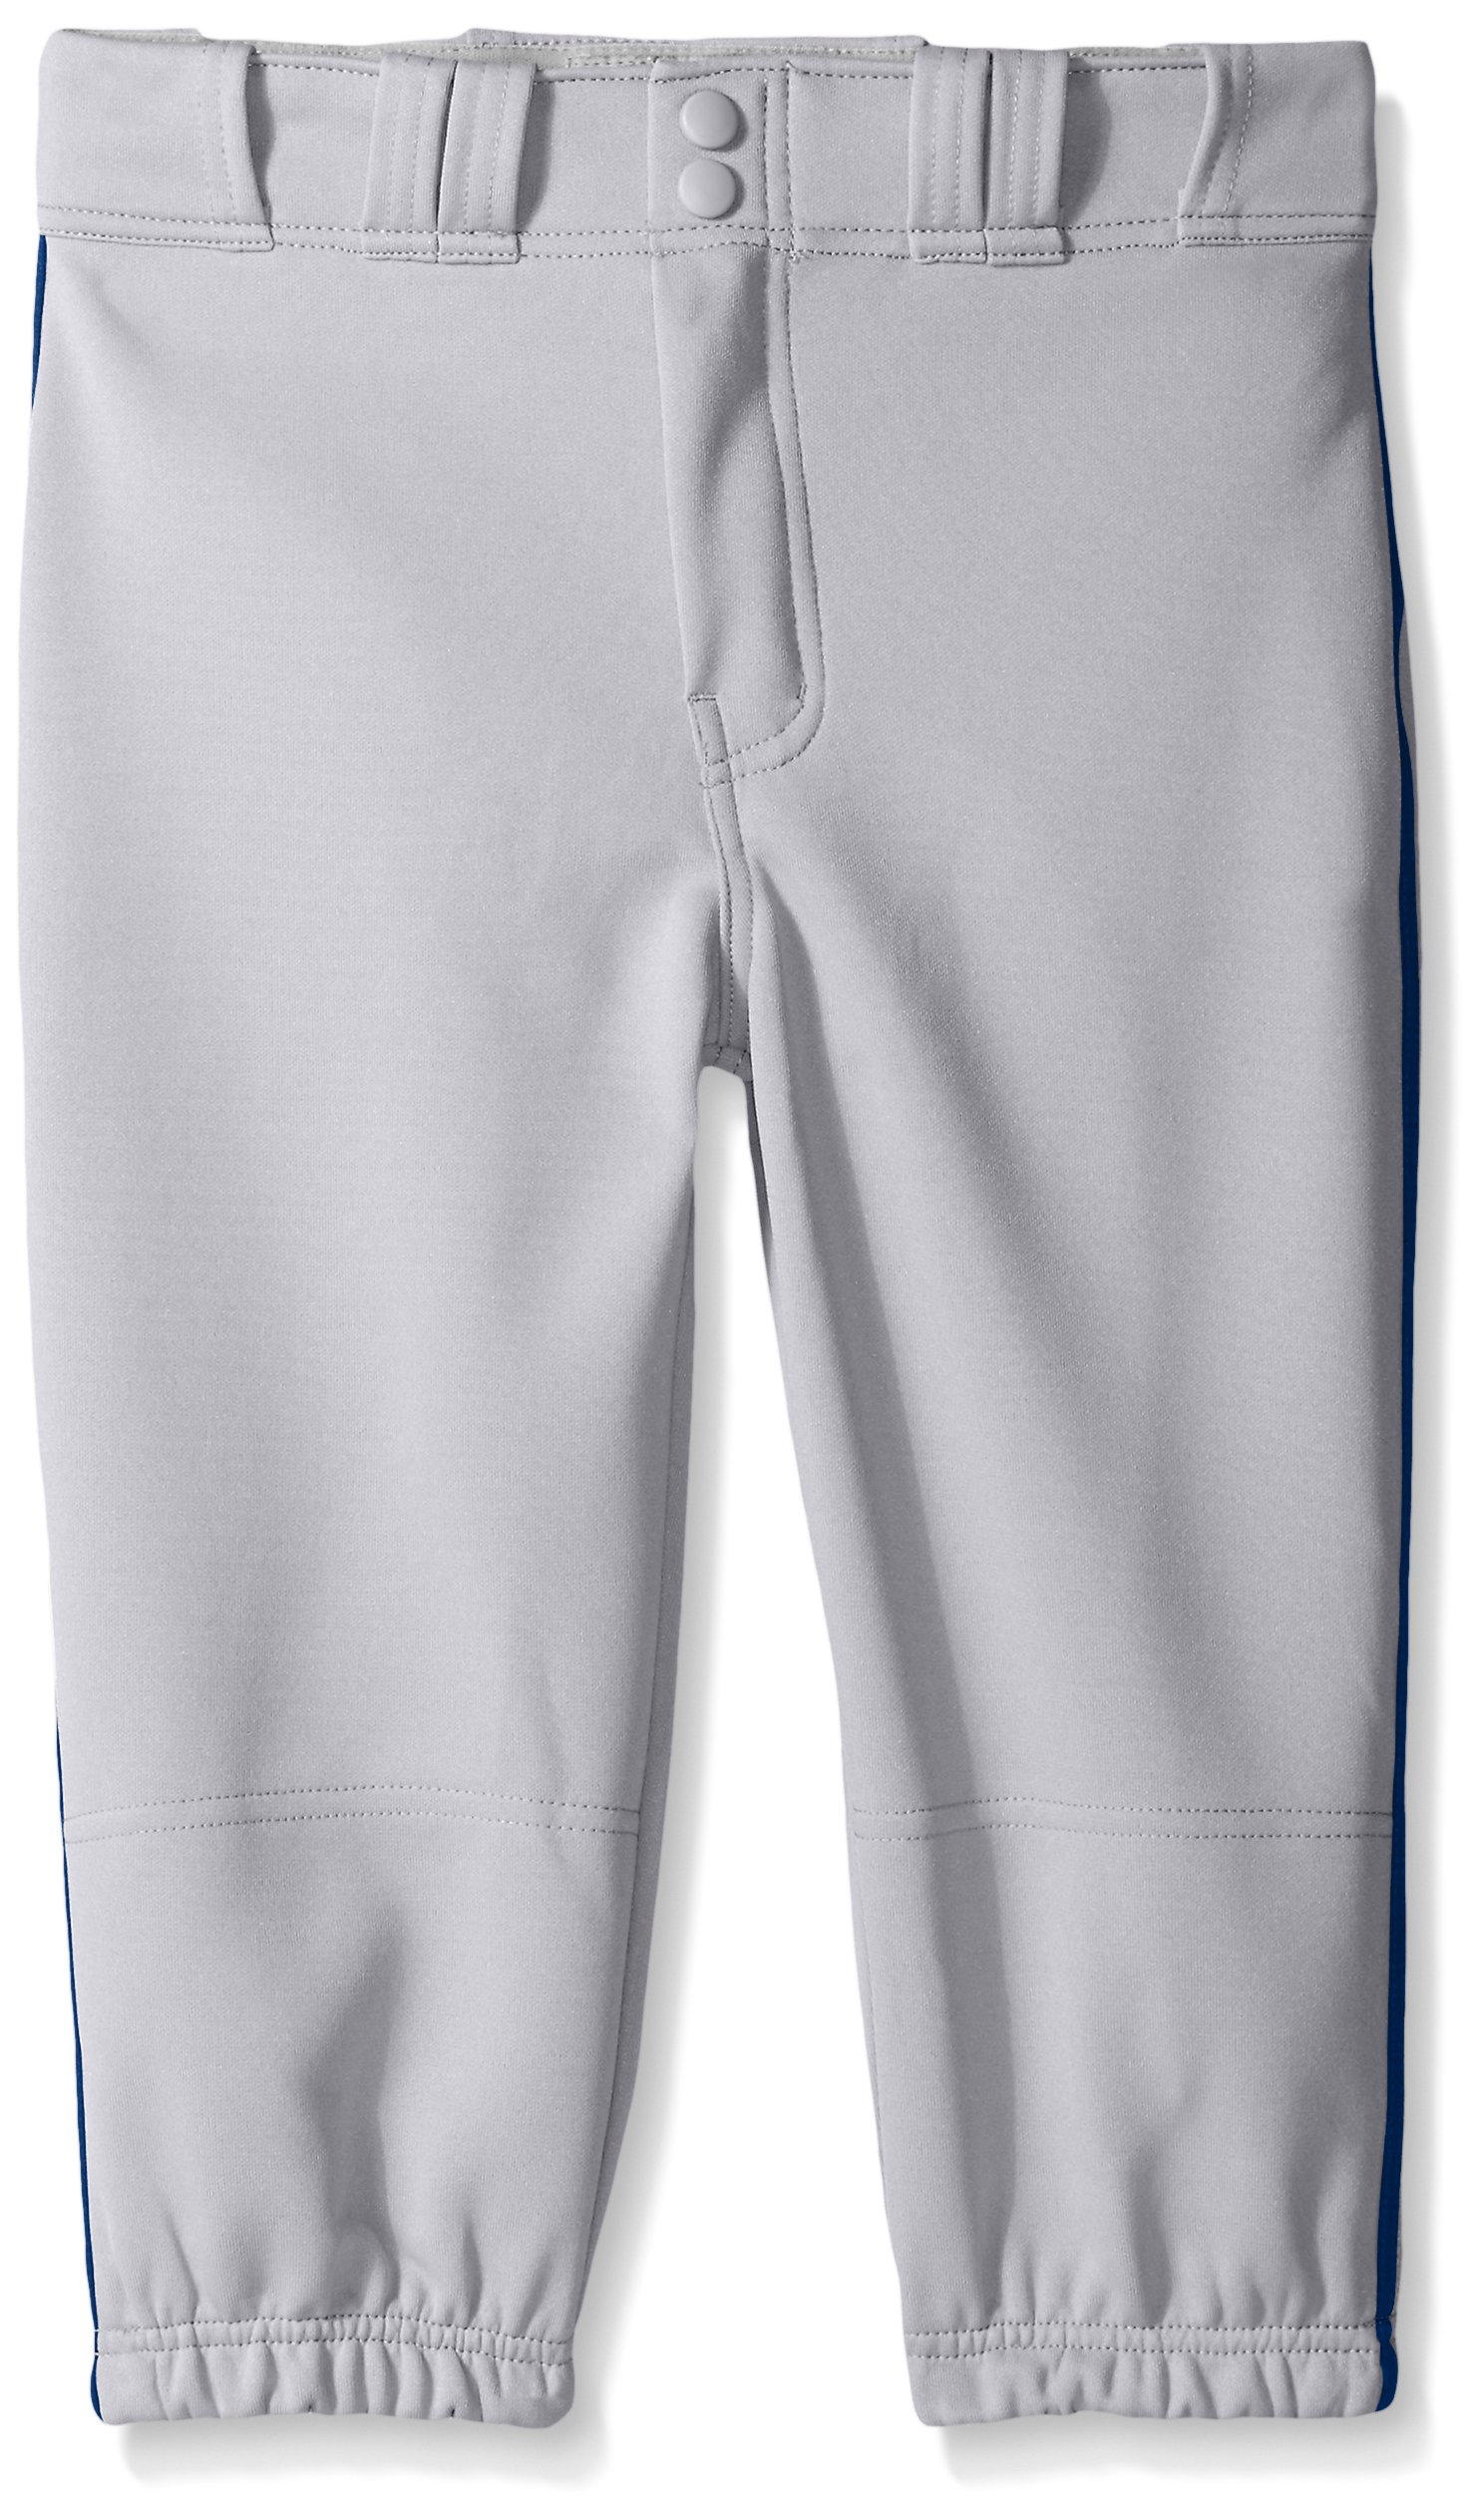 Easton Boys PRO Plus Piped Knicker, Grey/Navy, Small